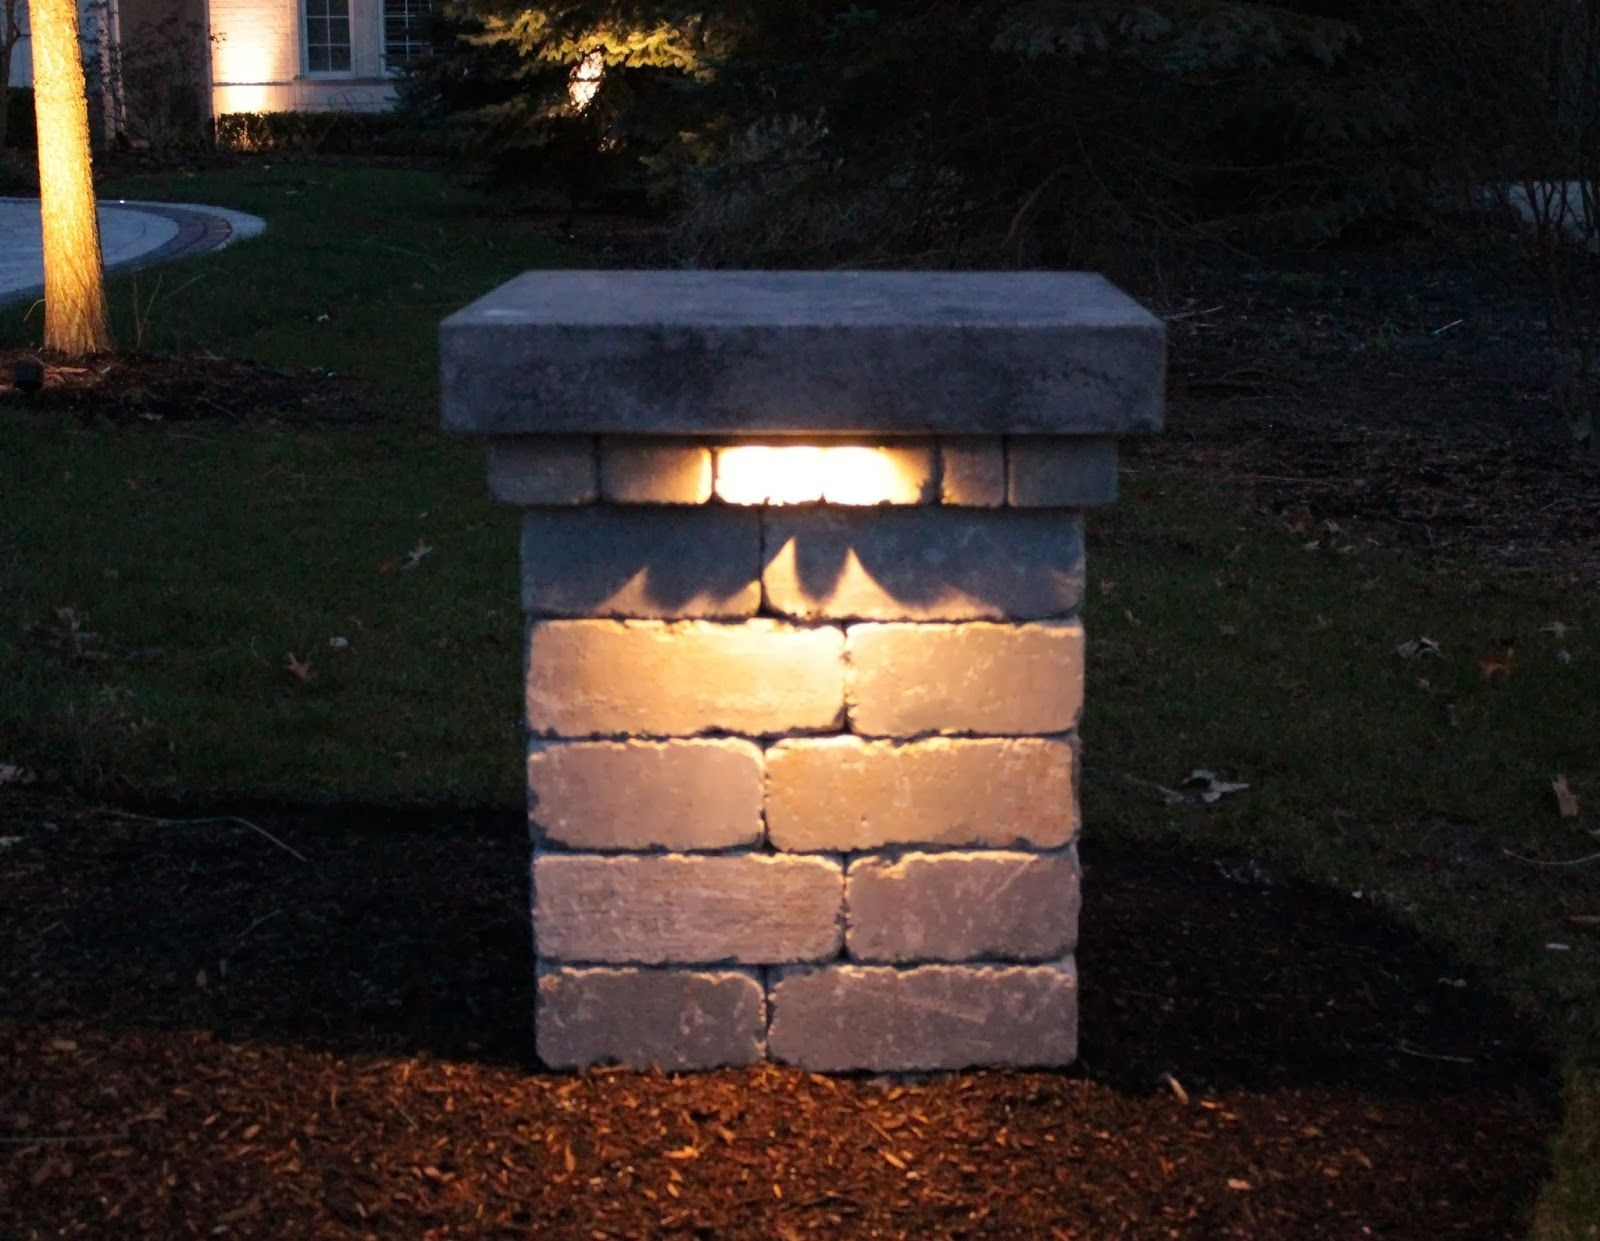 Driveway Pillar Lighting - Google Search | Gates & Driveways with Outdoor Lanterns for Pillars (Image 5 of 20)